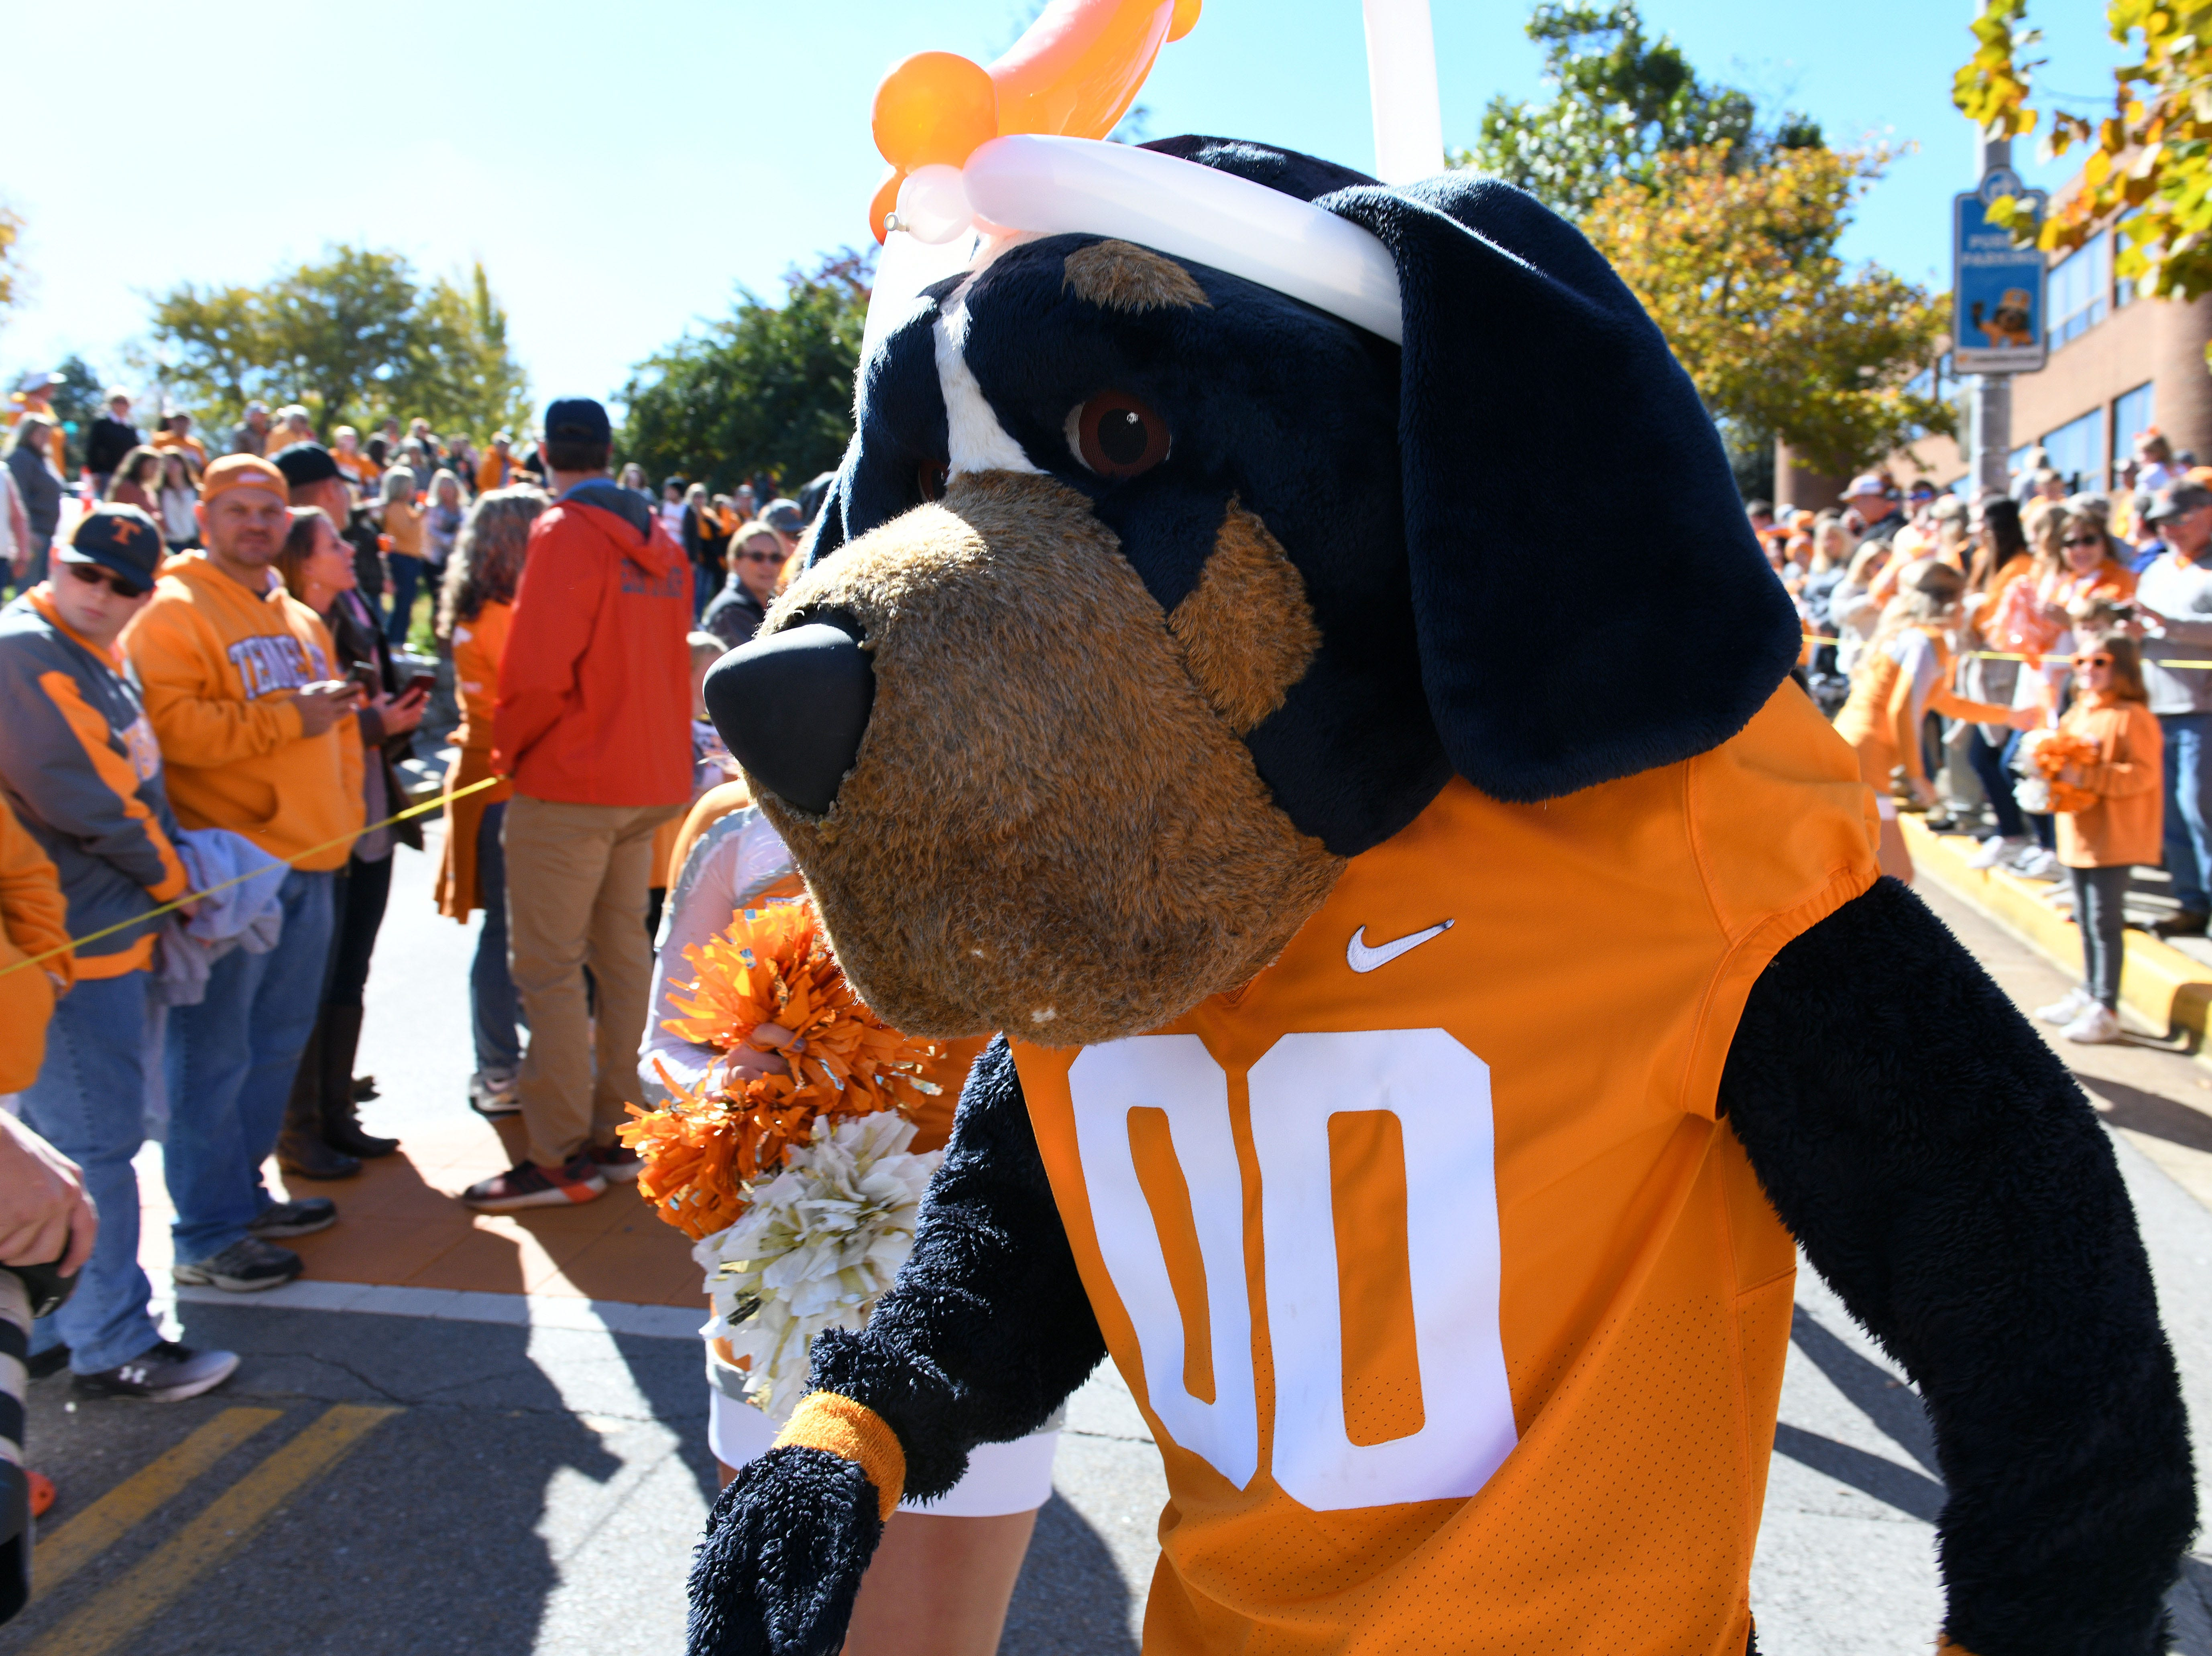 Smokey during pregame activities before the game against Charlotte Saturday, November 3, 2018 at Neyland Stadium in Knoxville, Tenn.